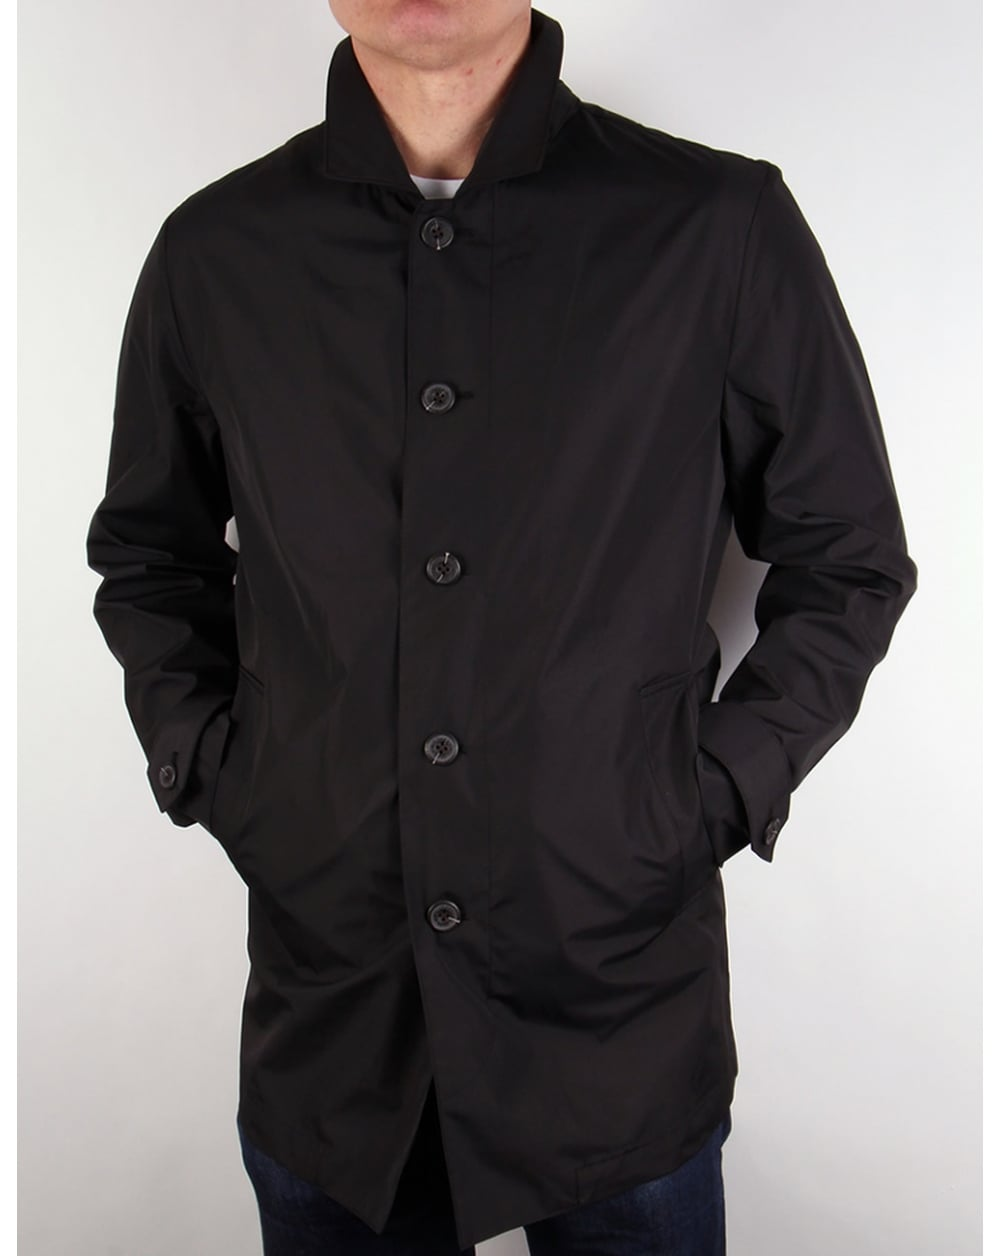 lyle and scott lightweight raincoat true black mac jacket coat mens. Black Bedroom Furniture Sets. Home Design Ideas